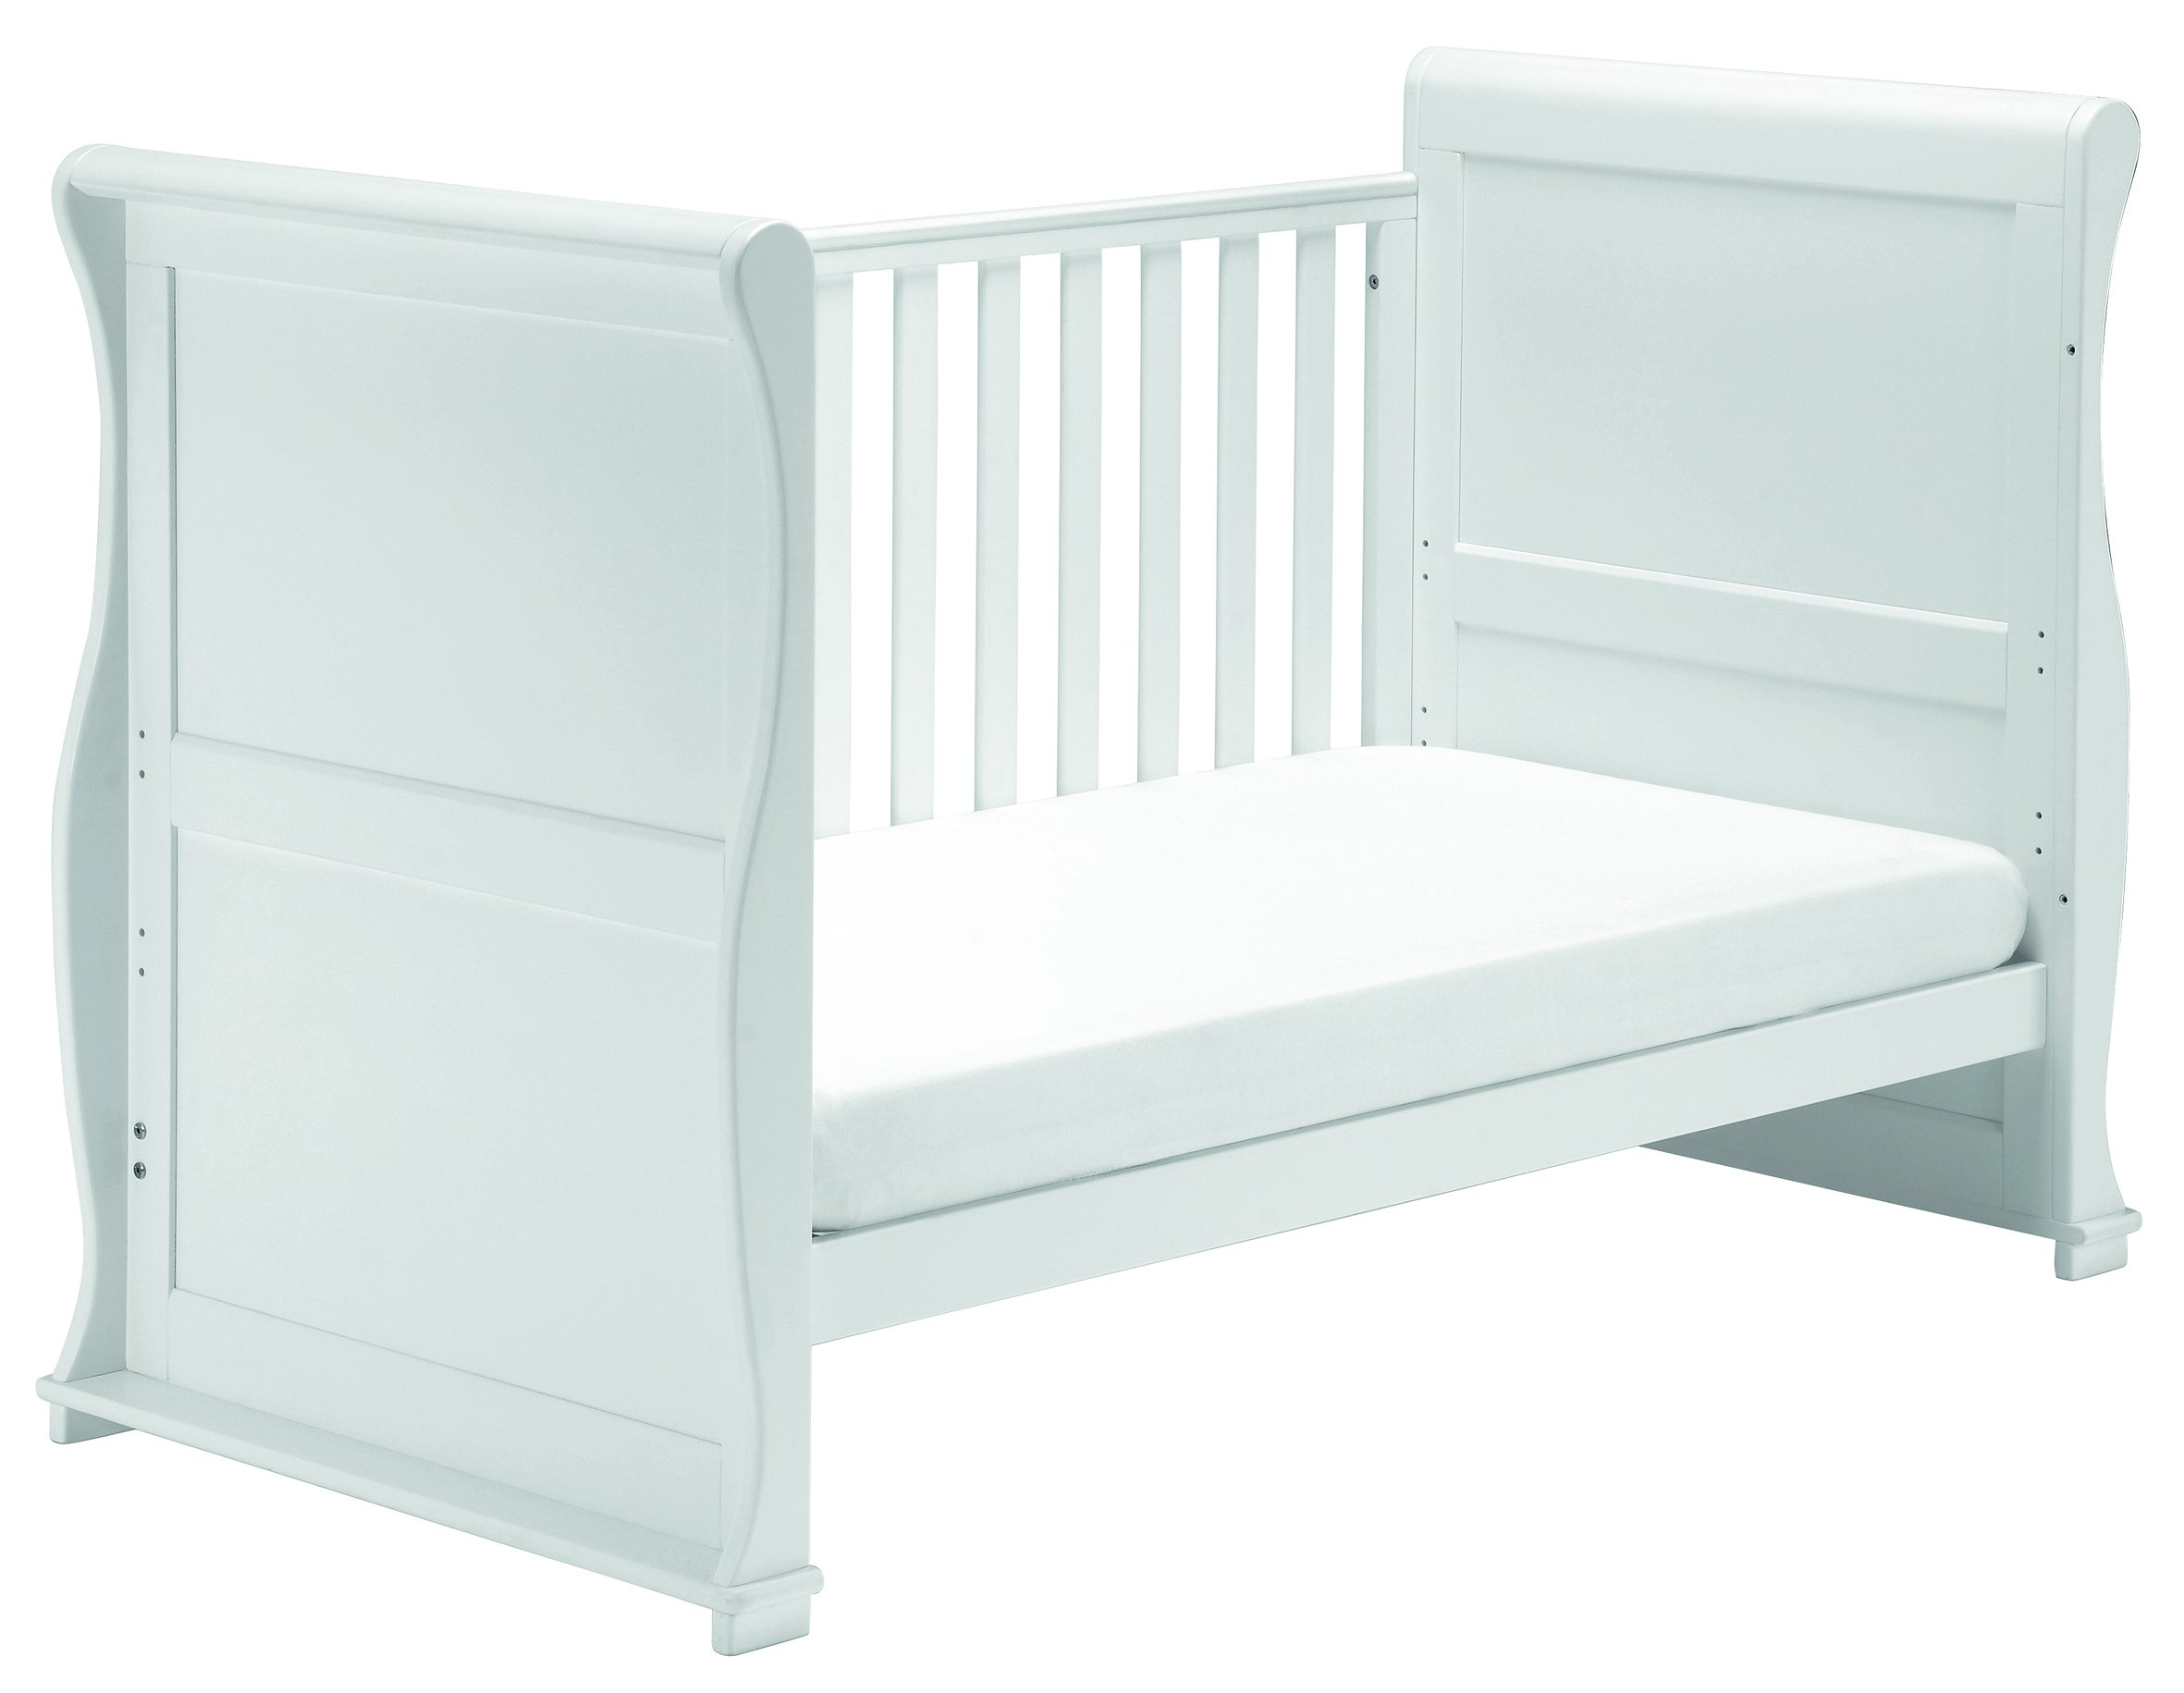 East Coast Nursery Alaska Sleigh Cotbed (White) East Coast Nursery Ltd 3 Base Heights 2 Fixed Sides Converts to day bed and toddler bed 2